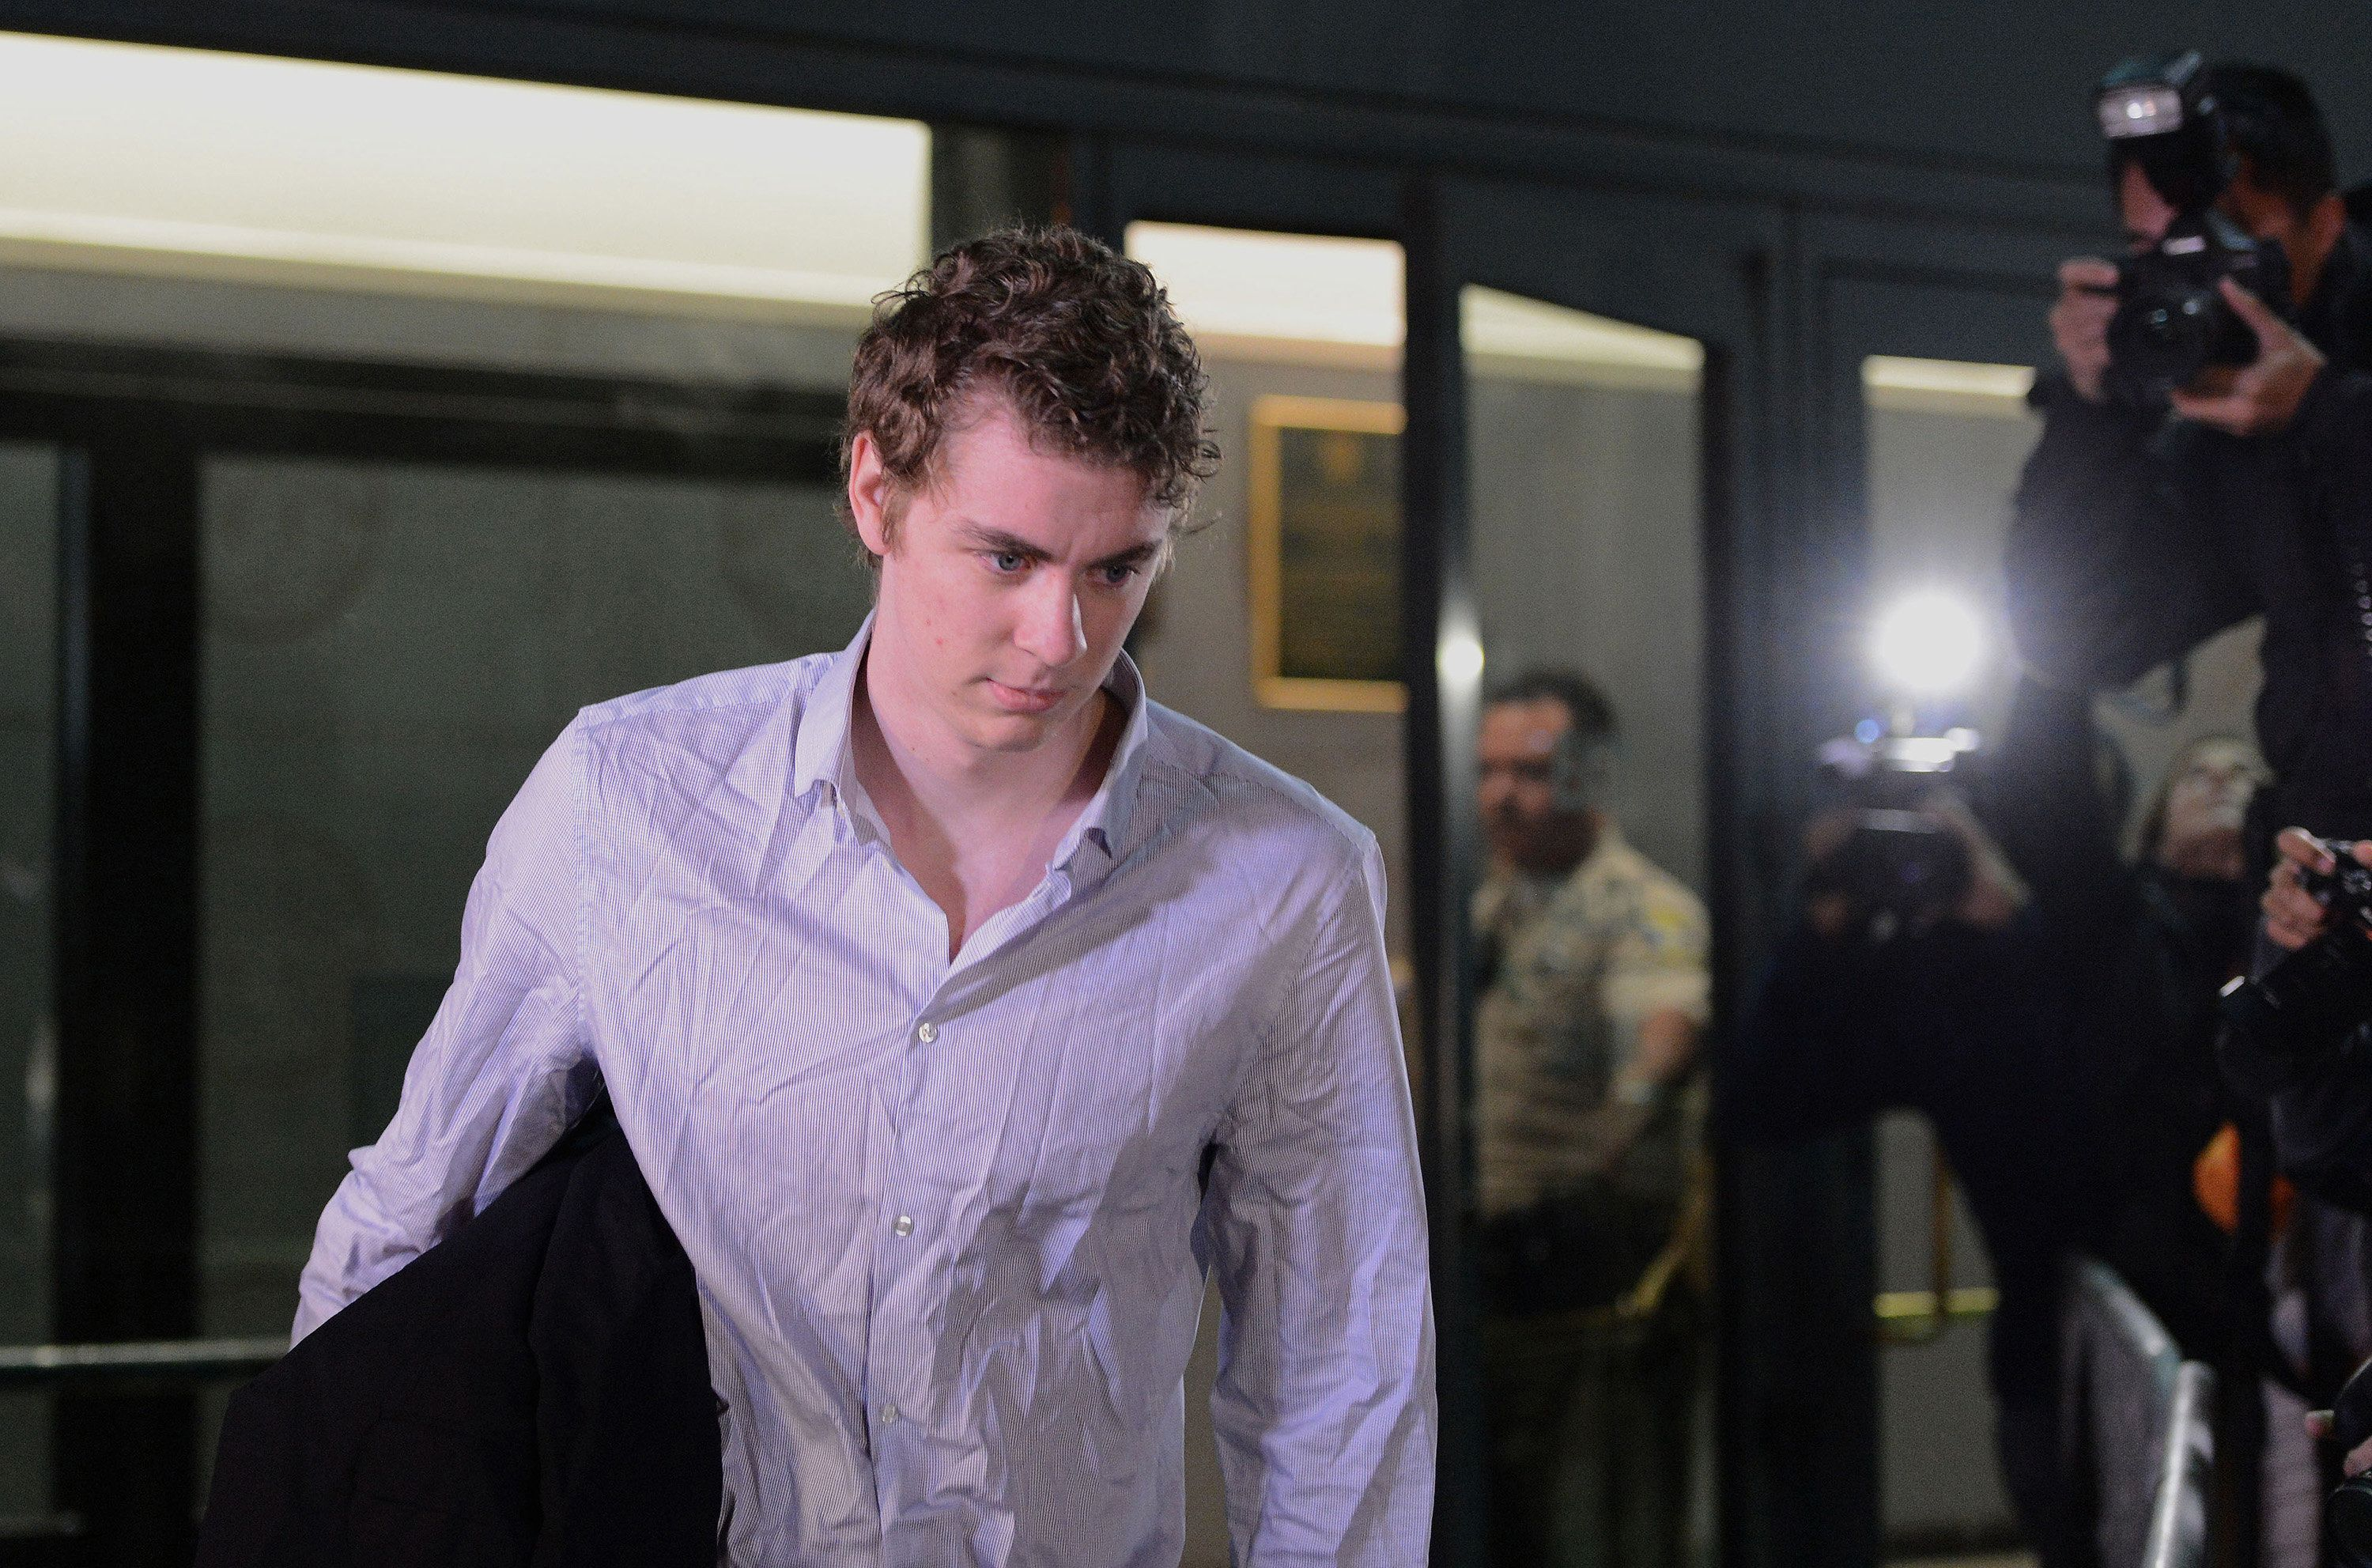 Brock Turner attorney argues ex-Stanford swimmer wanted 'outercourse,' not intercourse